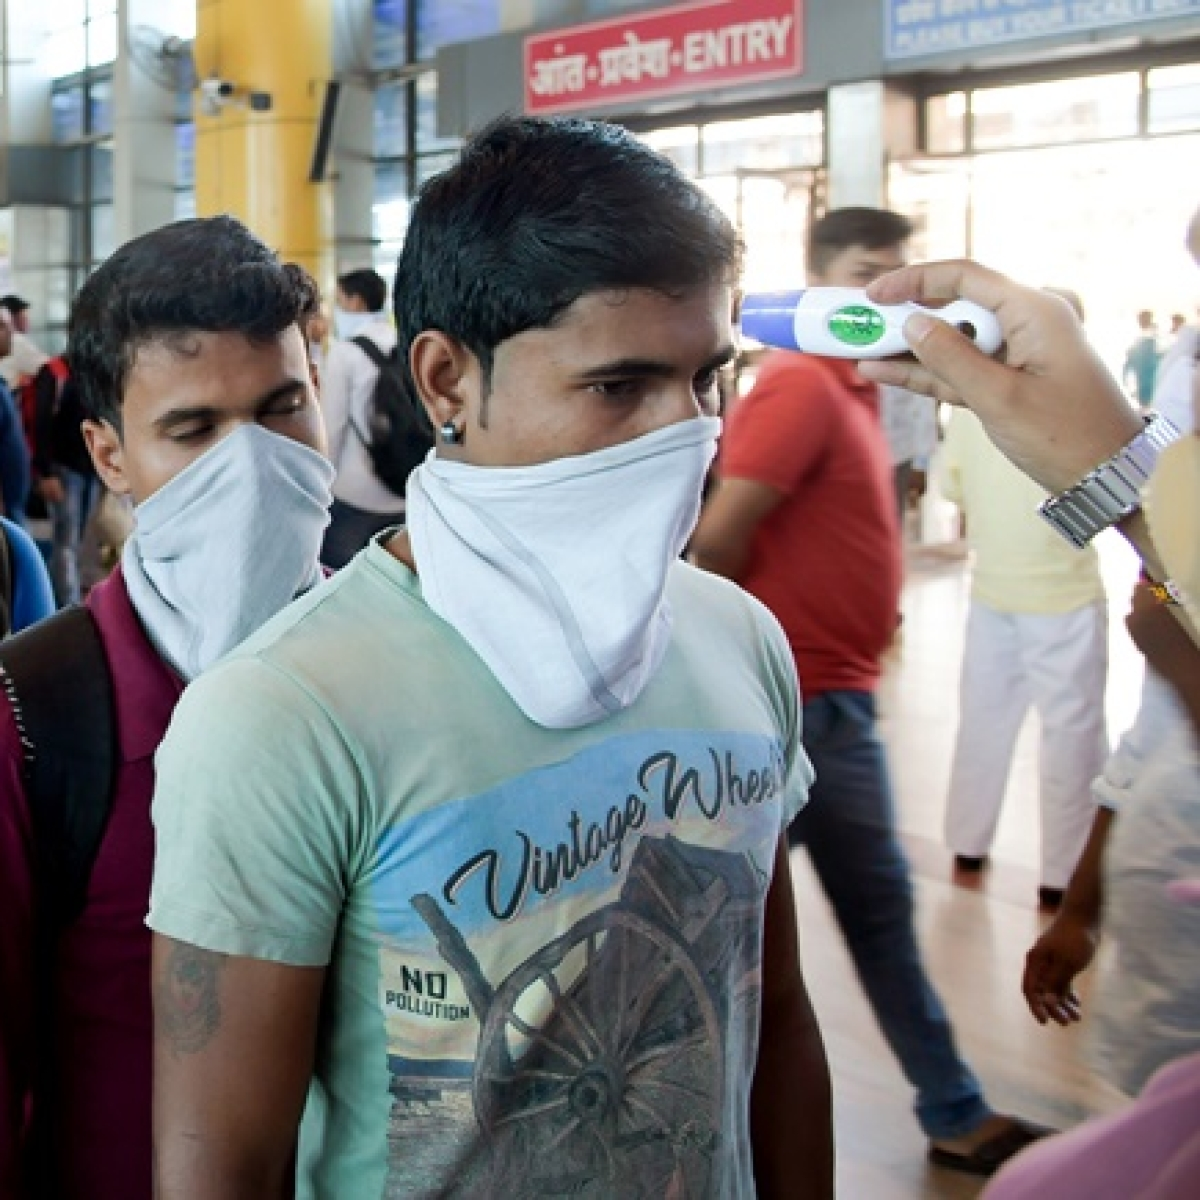 Coronavirus updates from India and the world: 2 more positive cases found in Dharavi